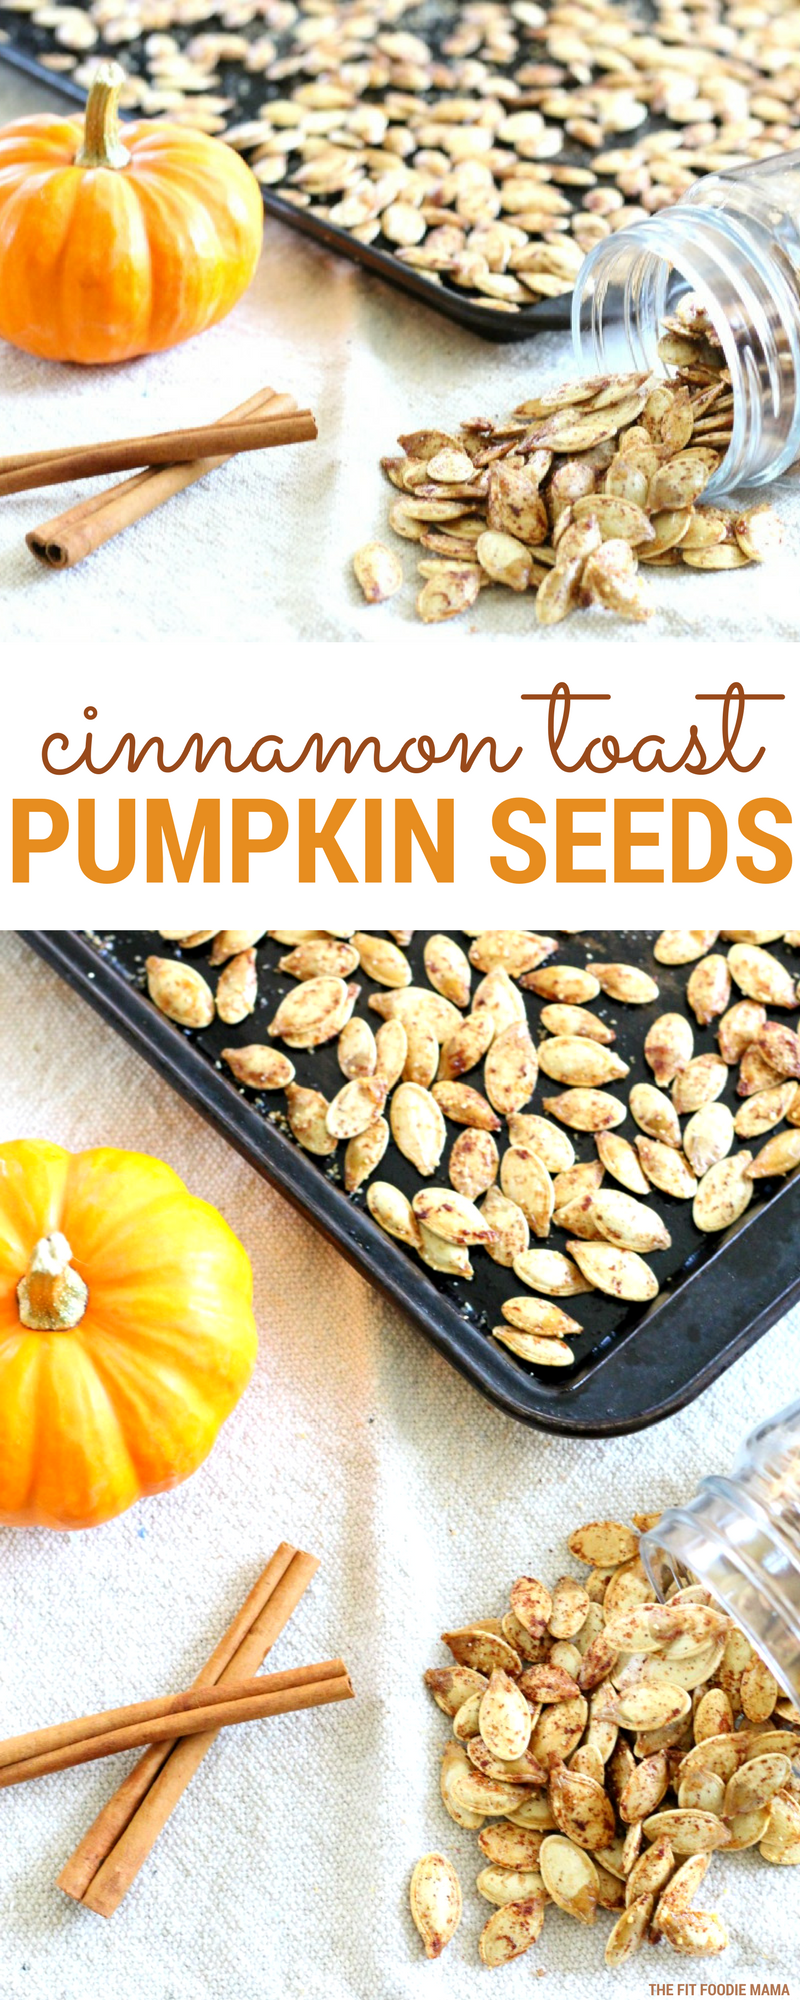 Cinnamon Toast Crunch Pumpkin Seeds that are healthy and just three ingredients!